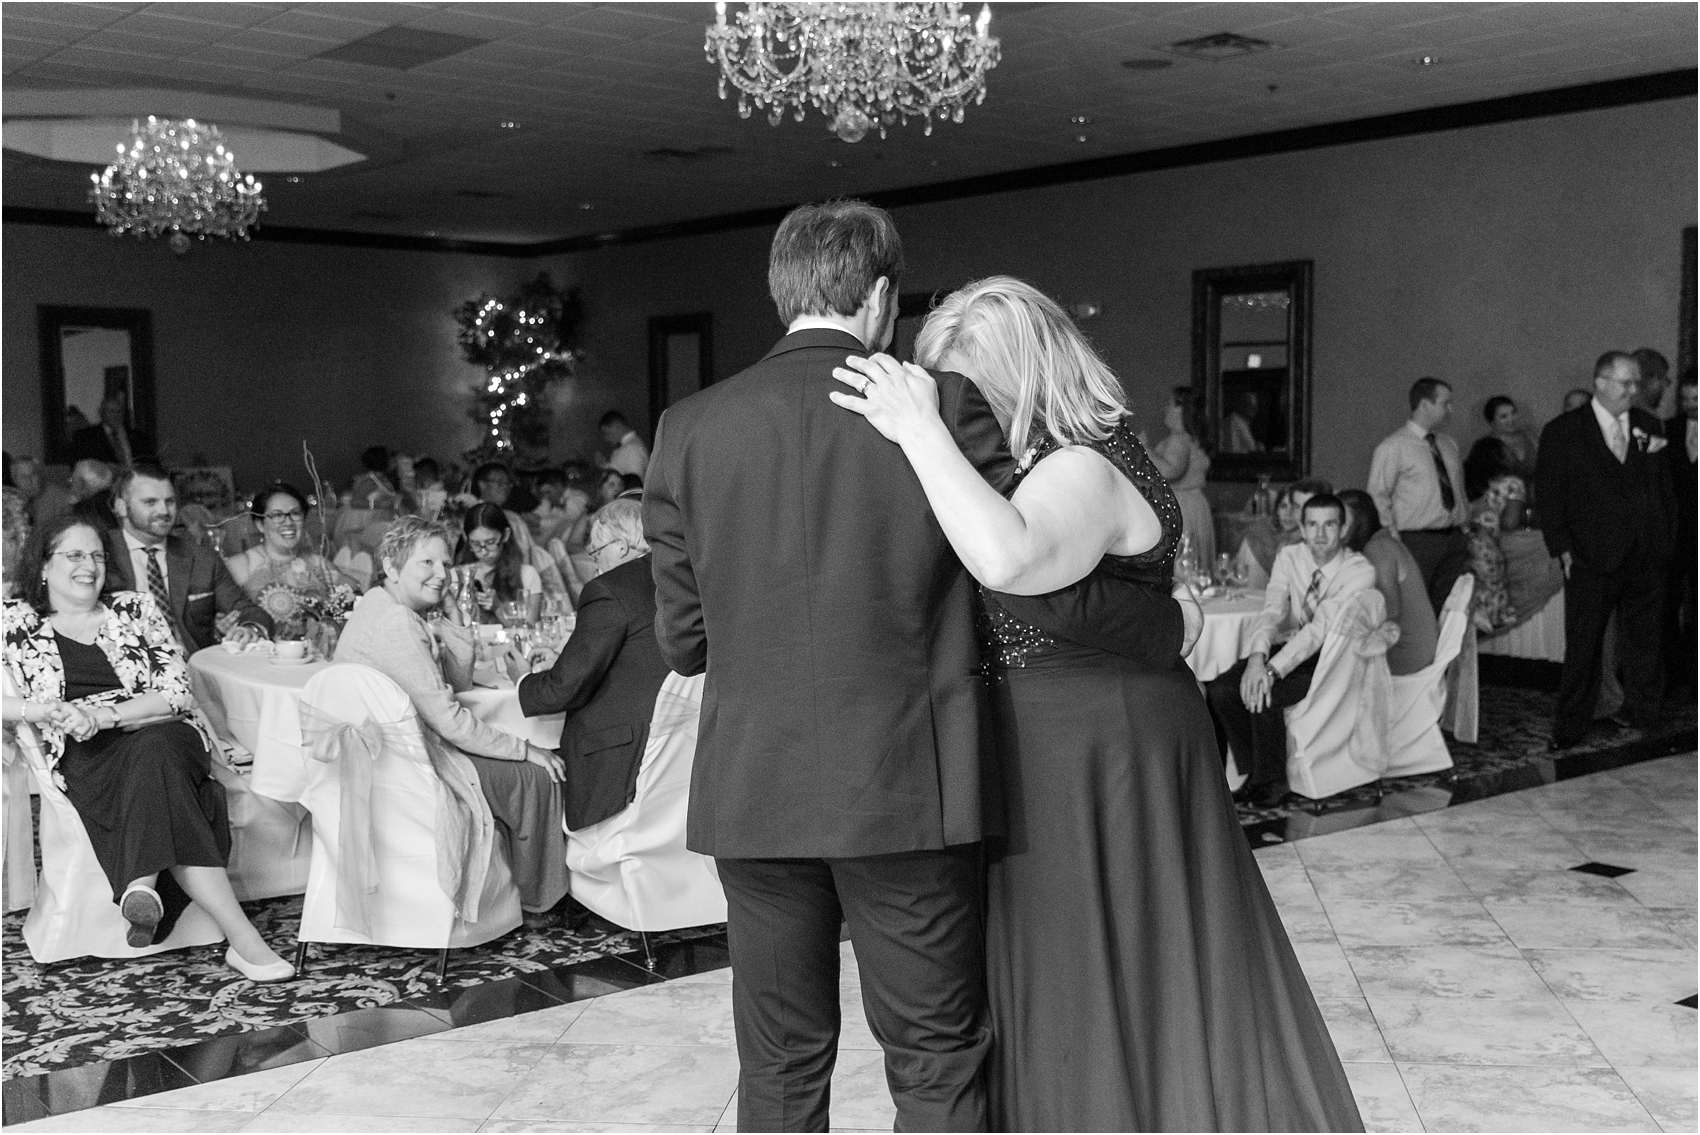 lord-of-the-rings-inspired-wedding-photos-at-crystal-gardens-in-howell-mi-by-courtney-carolyn-photography_0090.jpg